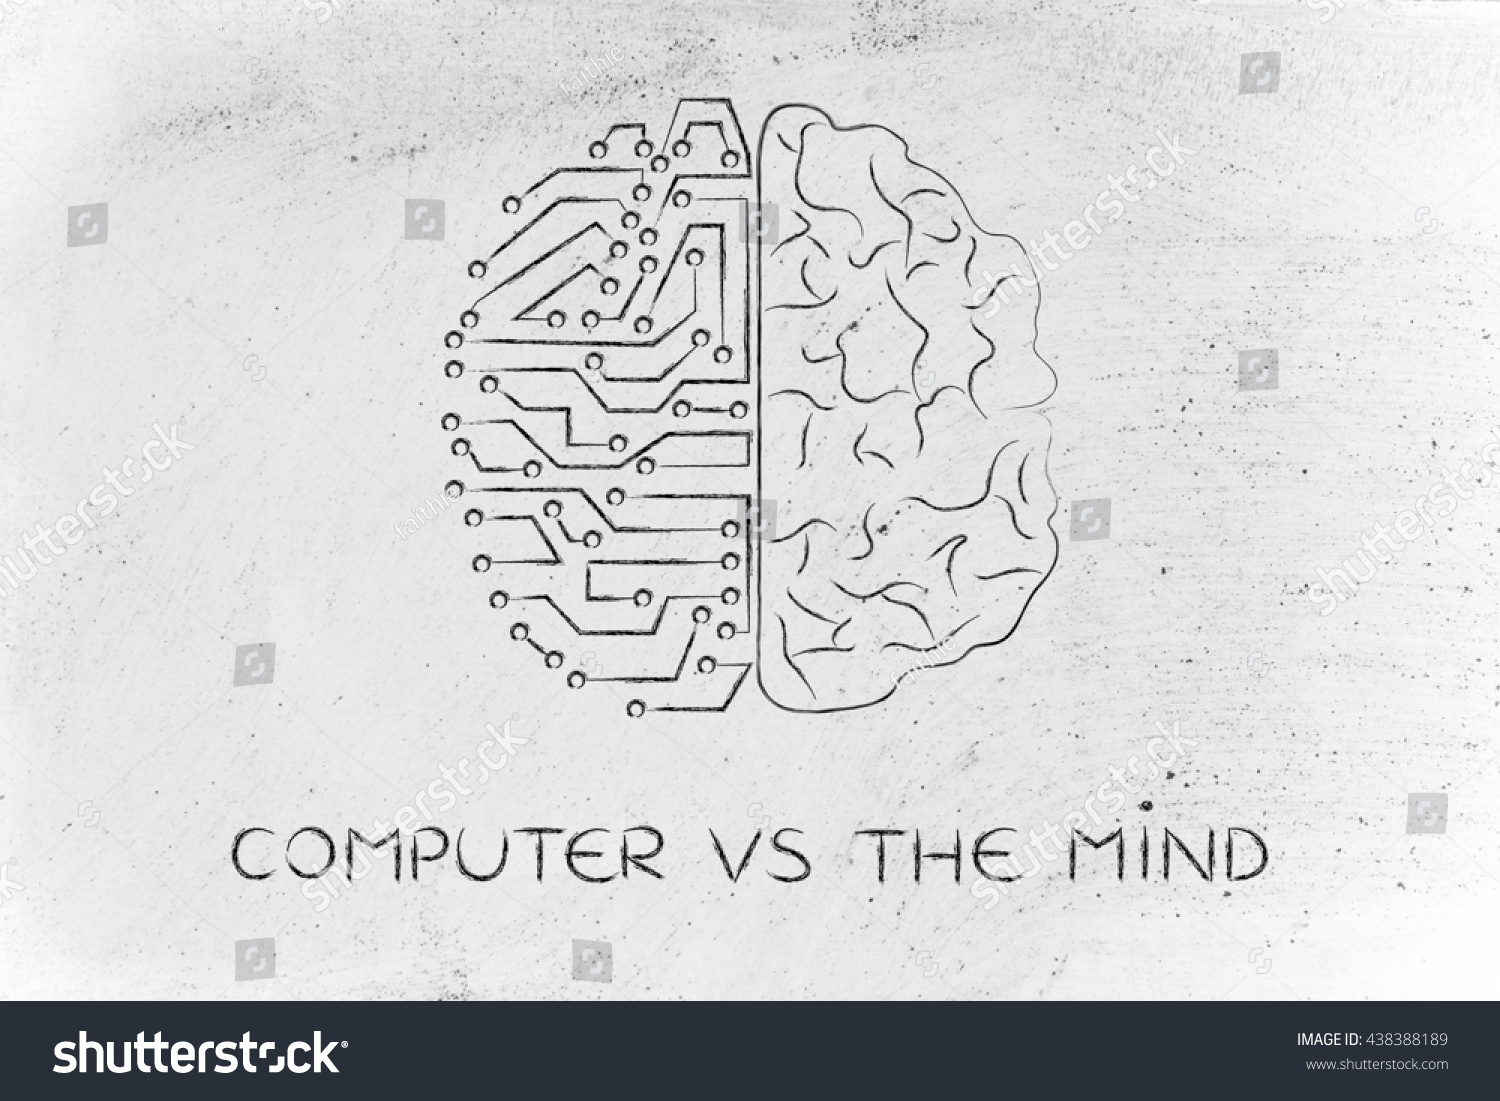 "human brain vs computer essay The enormous, nearly inconceivable complexity of the human brain has defied scientific inquiry since the dawn of civilization according to the science journal discover, neuroscientists have yet to ""master the syntax or set of rules that transform electrochemical pulses coursing through the brain into perceptions, memories."